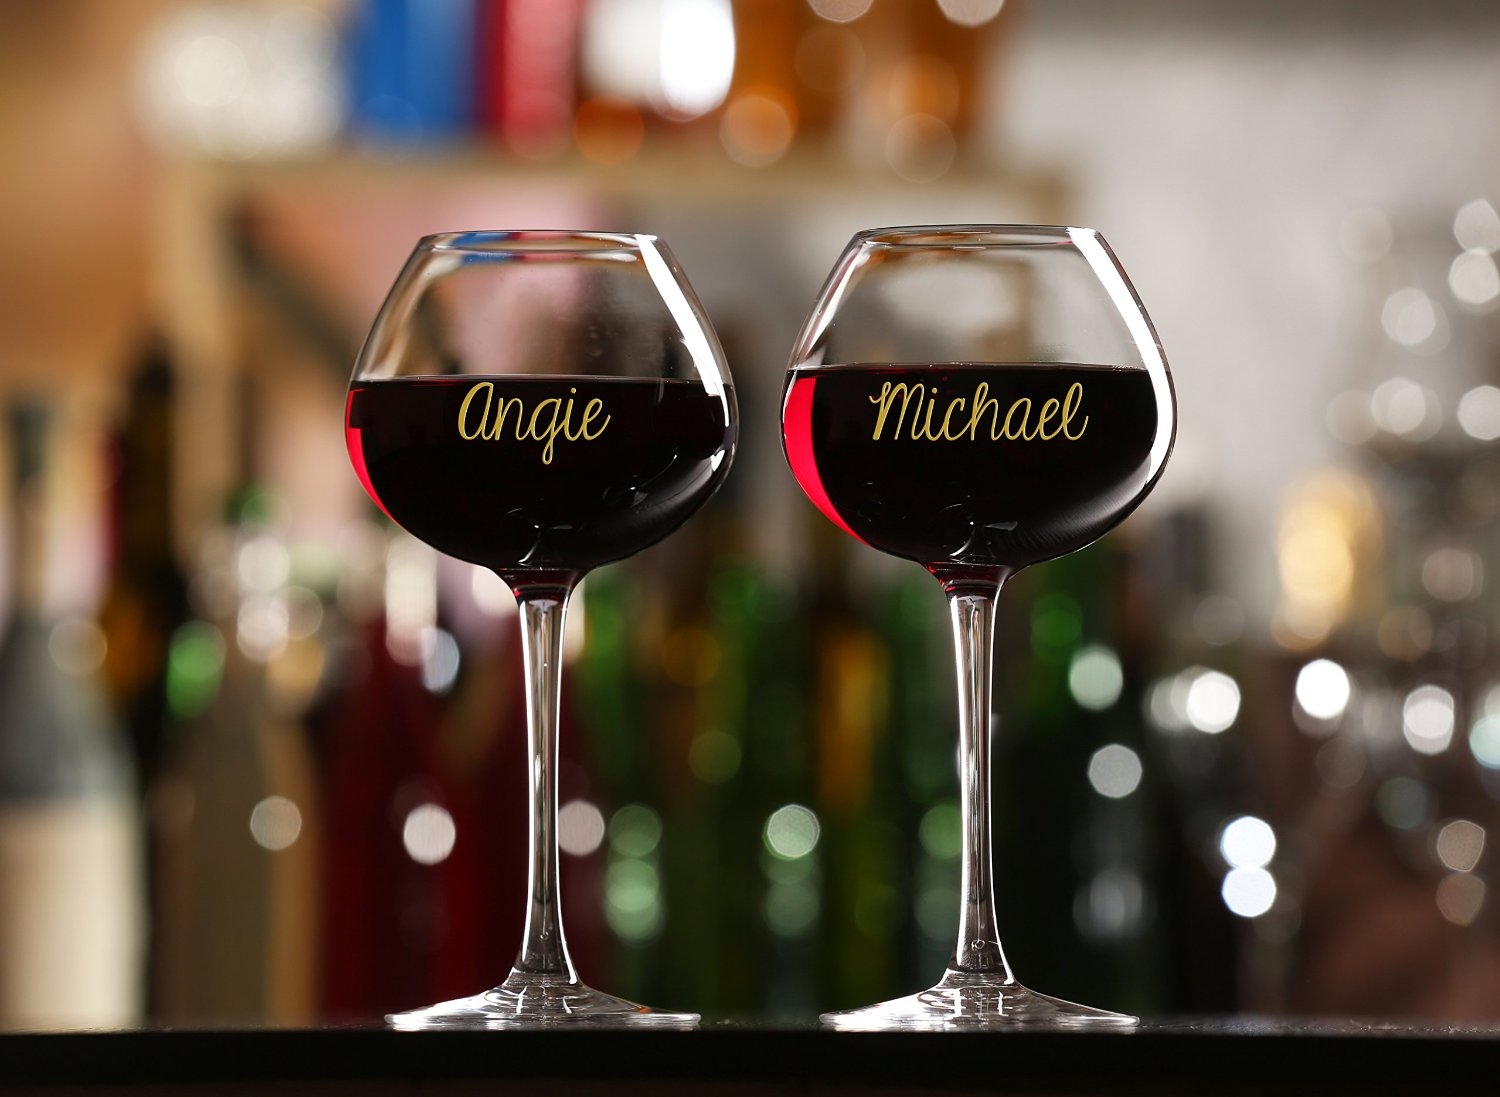 Names written with marker on wine glasses